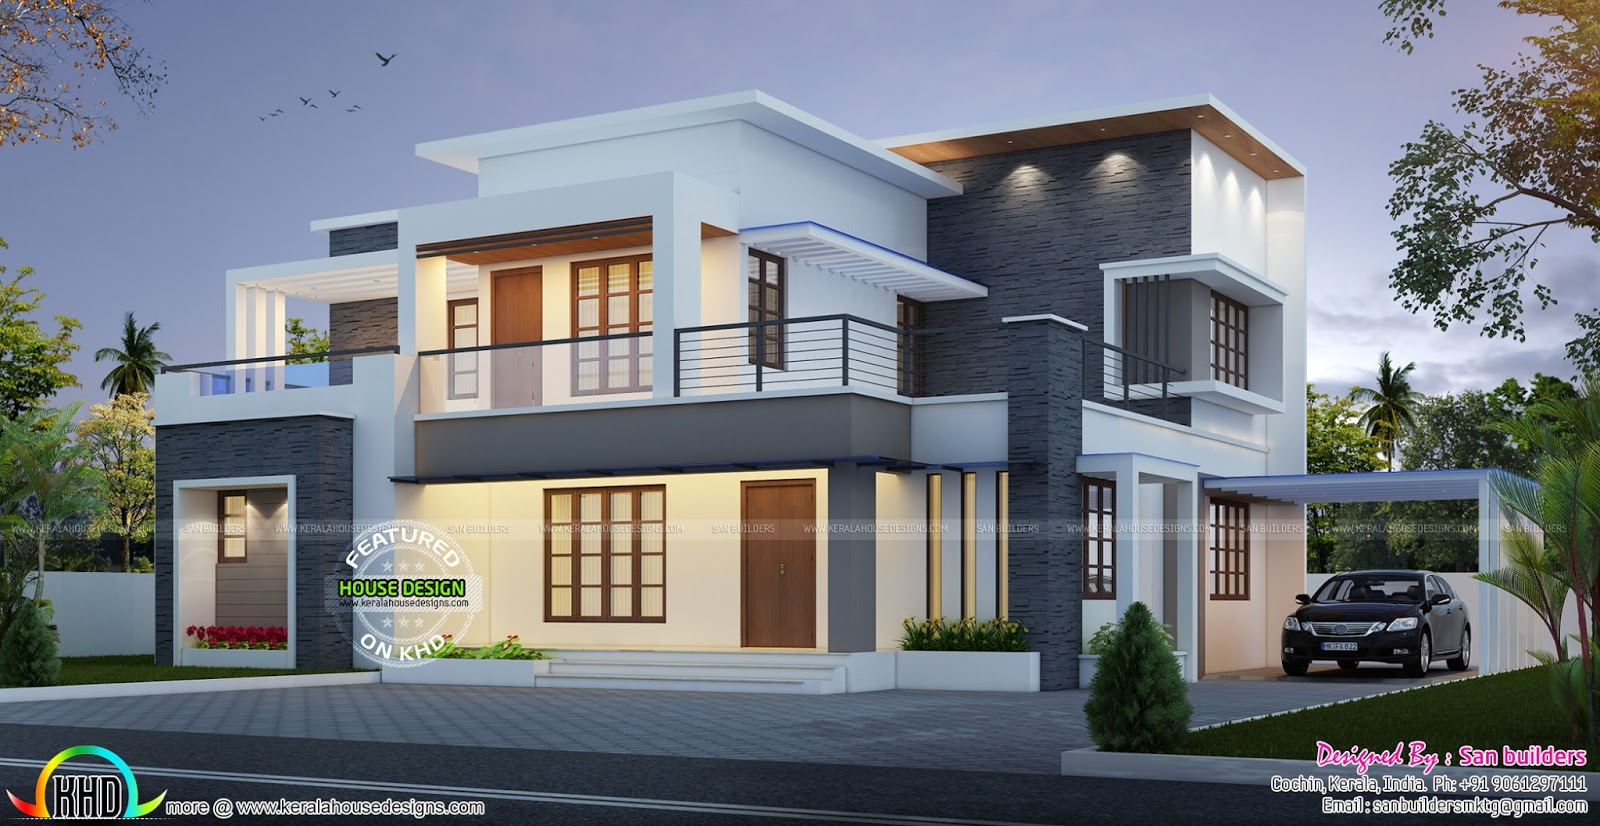 Top Floor Elevation : House plan and elevation by san builders kerala home